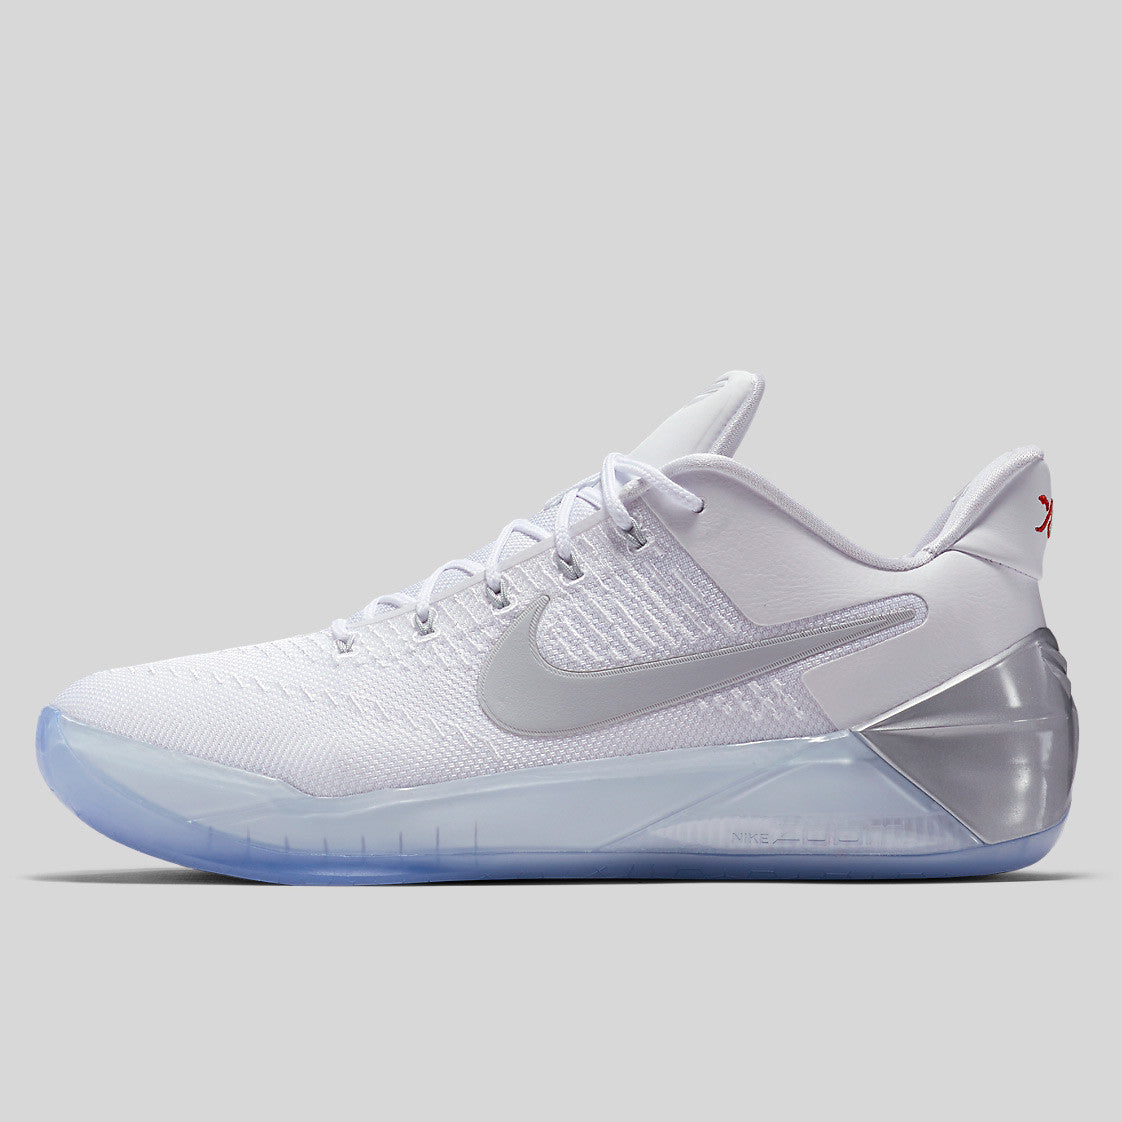 Nike Kobe A.D. EP White Chrome (852427-110)